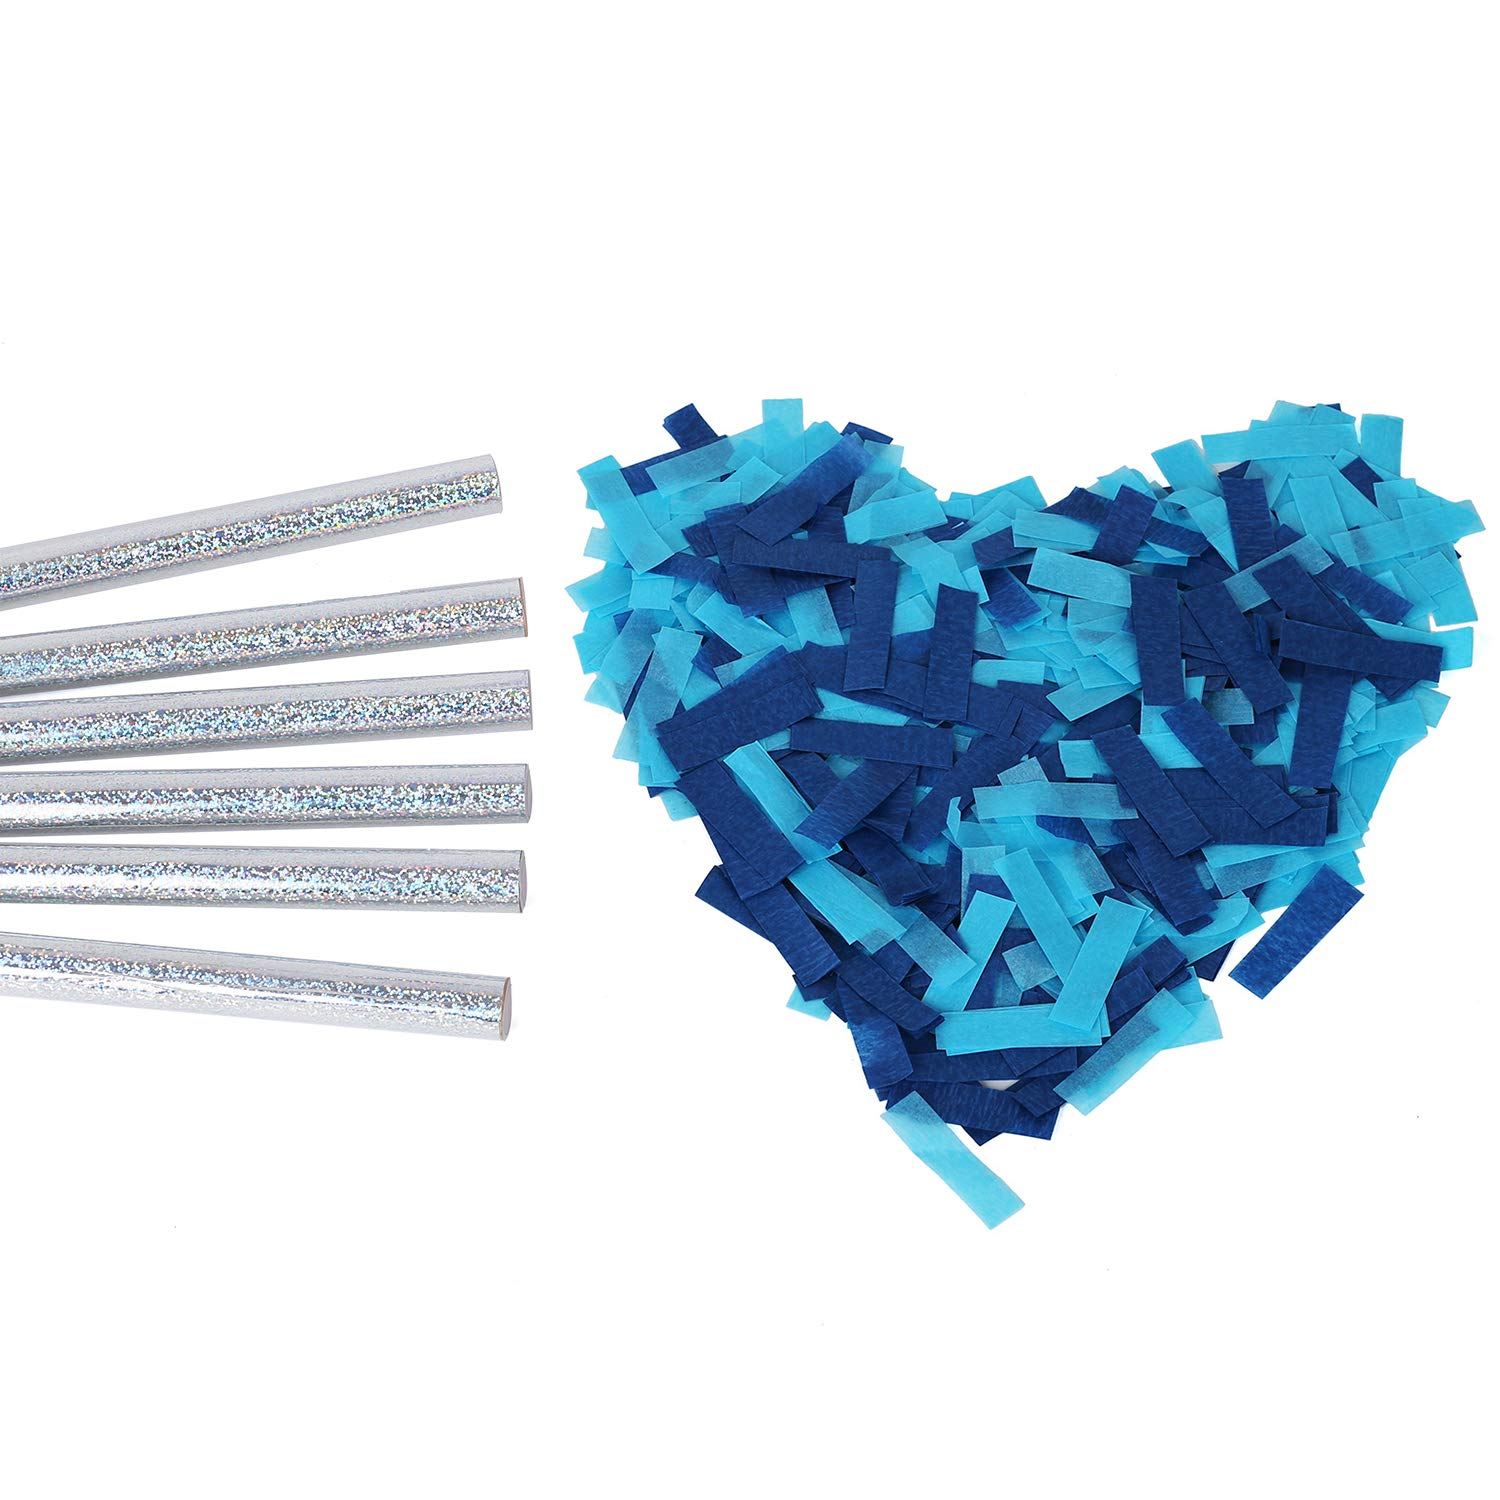 Gender Reveals Confetti Wands Blue 6Pack Paper Confetti Flick Sticks Biodegradable Tissue for Boy Baby Shower Party Decorations Supplies - Blue 14inch